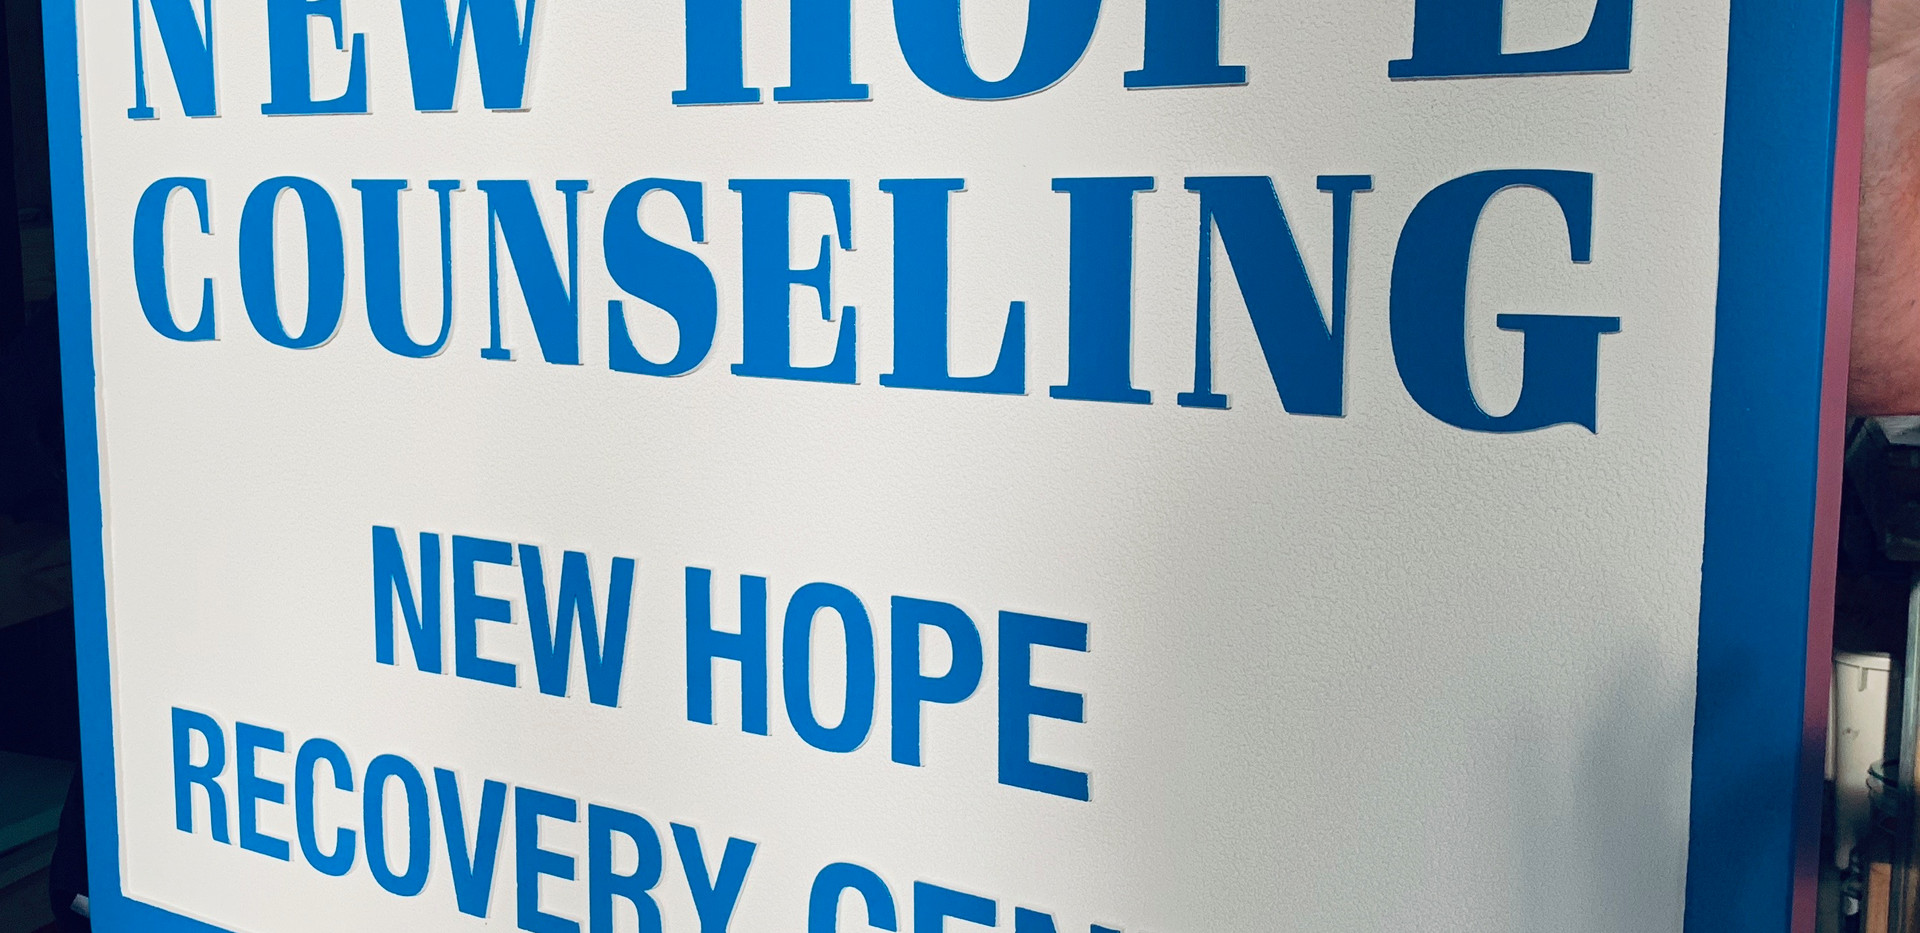 New Hope Counseling, GA